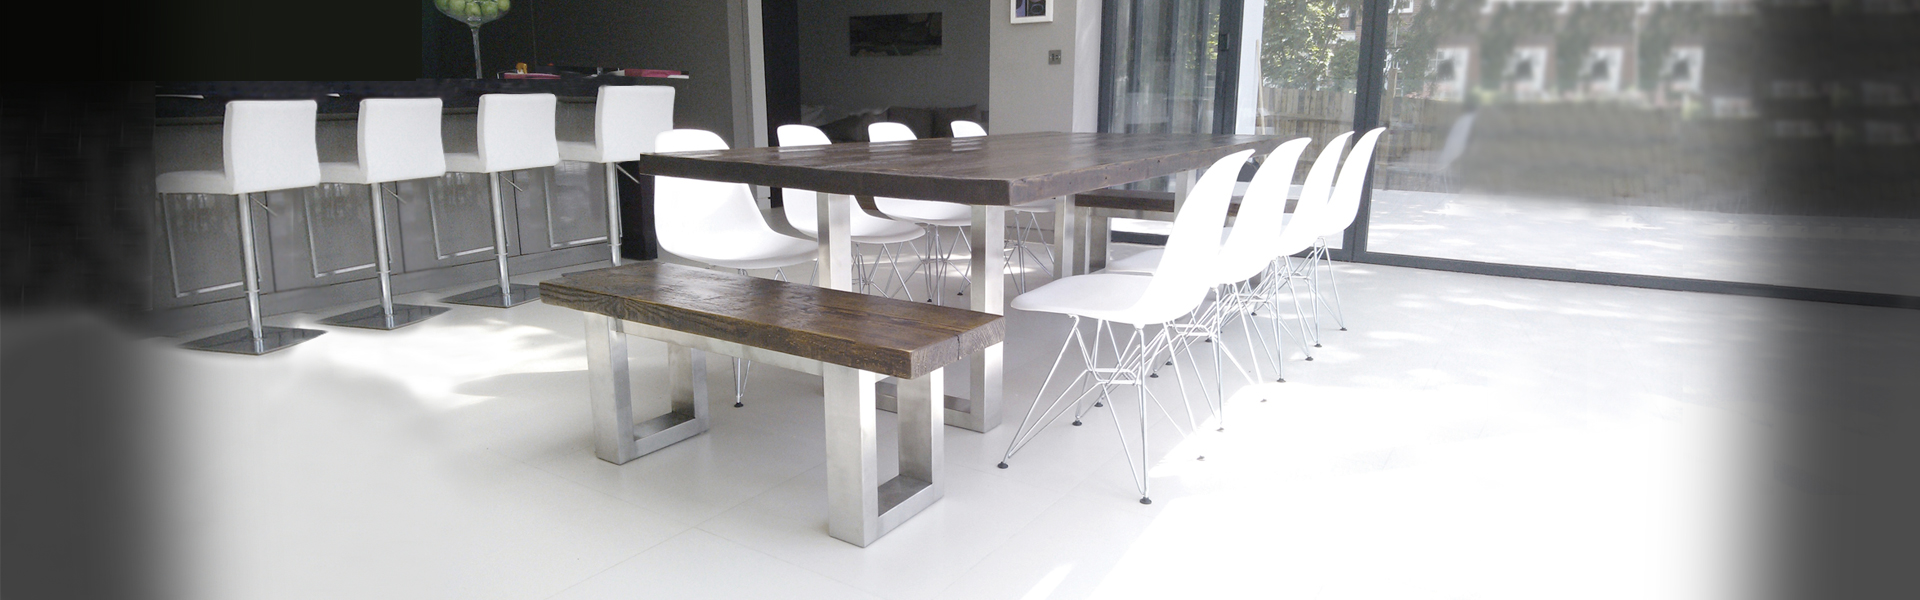 Reclaimed wood table and benches |Contemporary Furniture